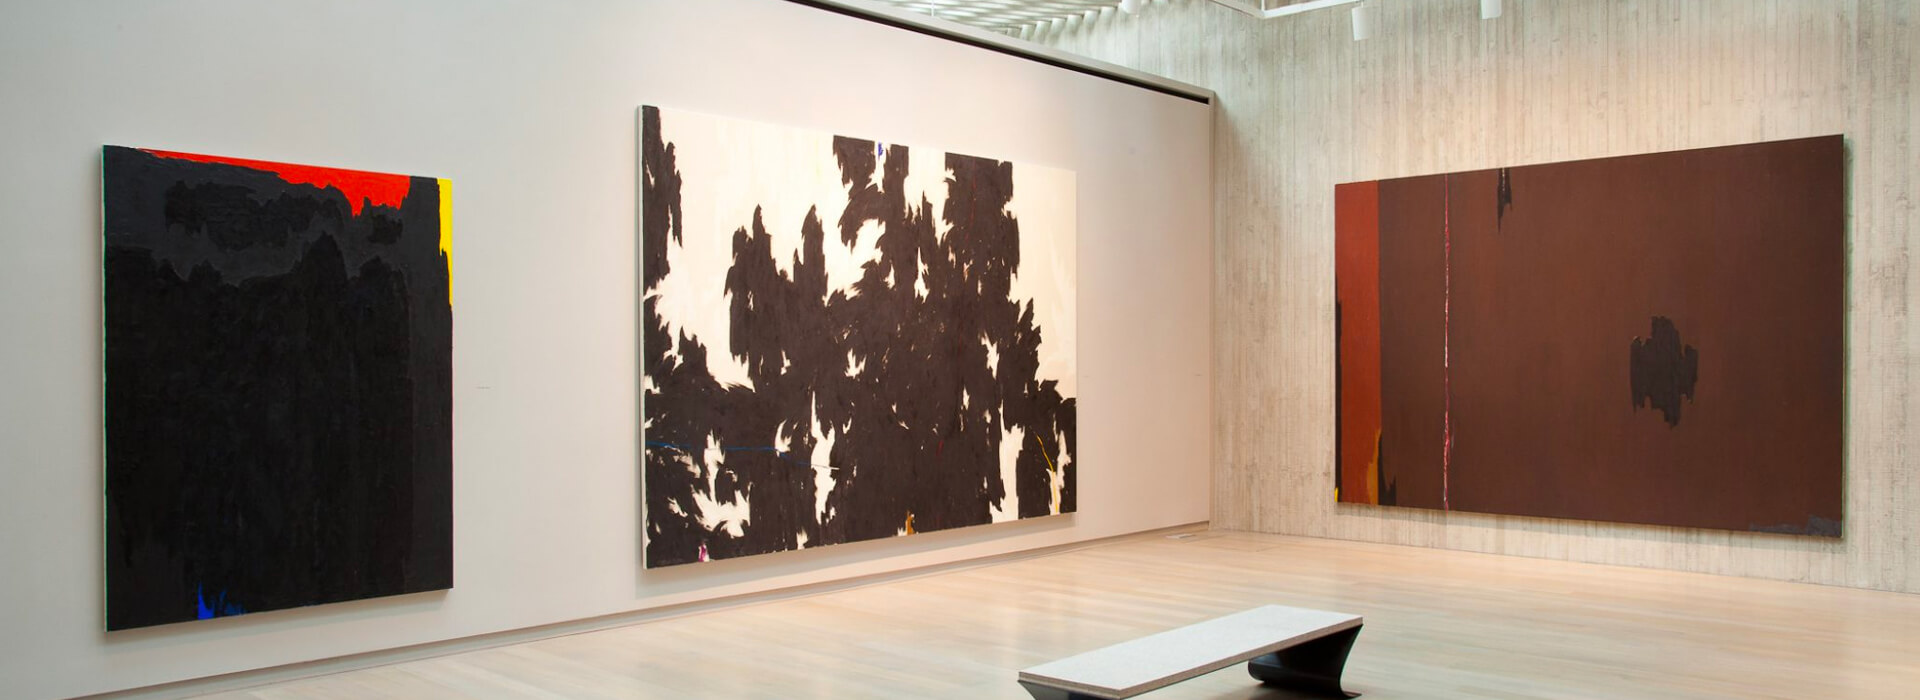 Three large abstract oil paintings hang on the walls of the Clyfford Still Museum